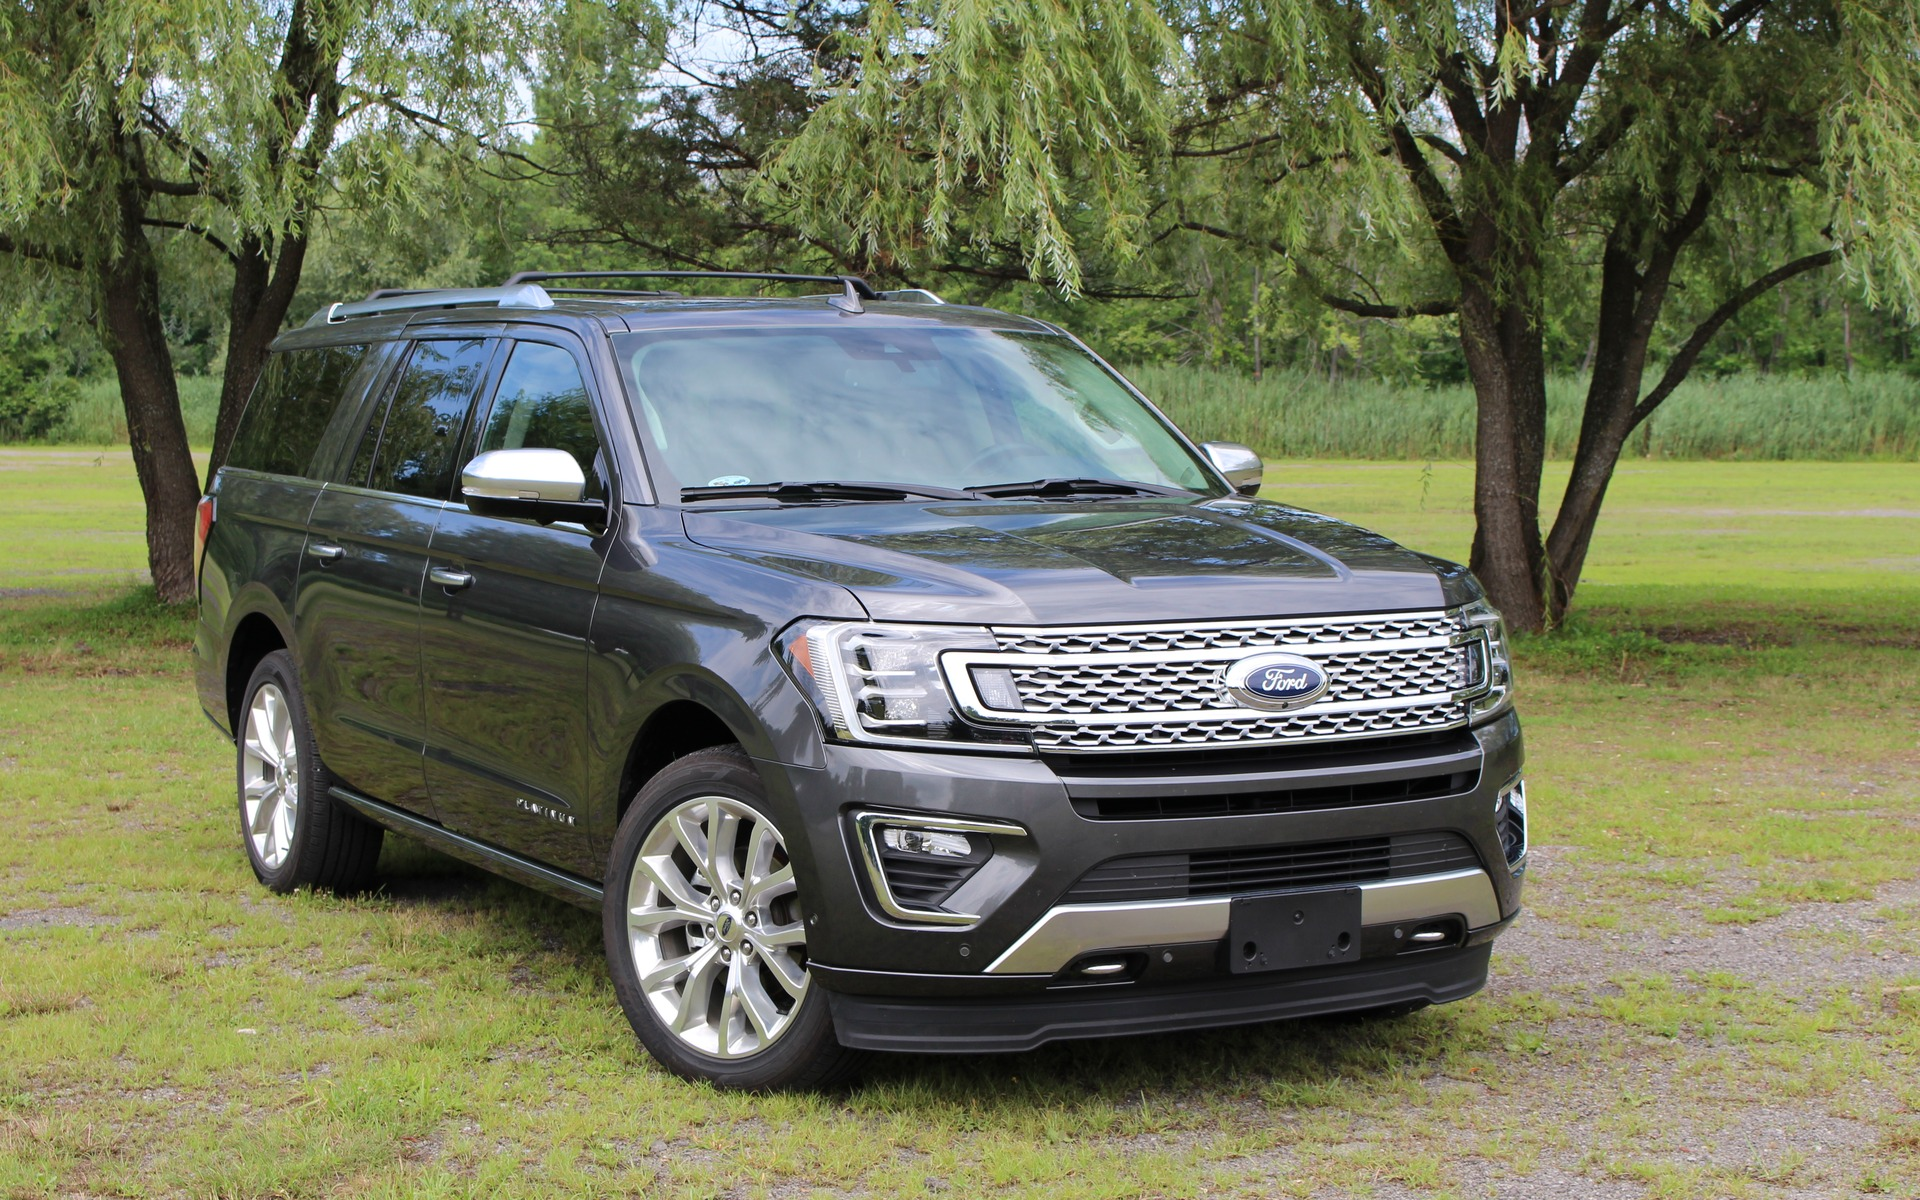 Ford Expedition MAX 2018 : plus gros que gros 348515_2018_Ford_Expedition